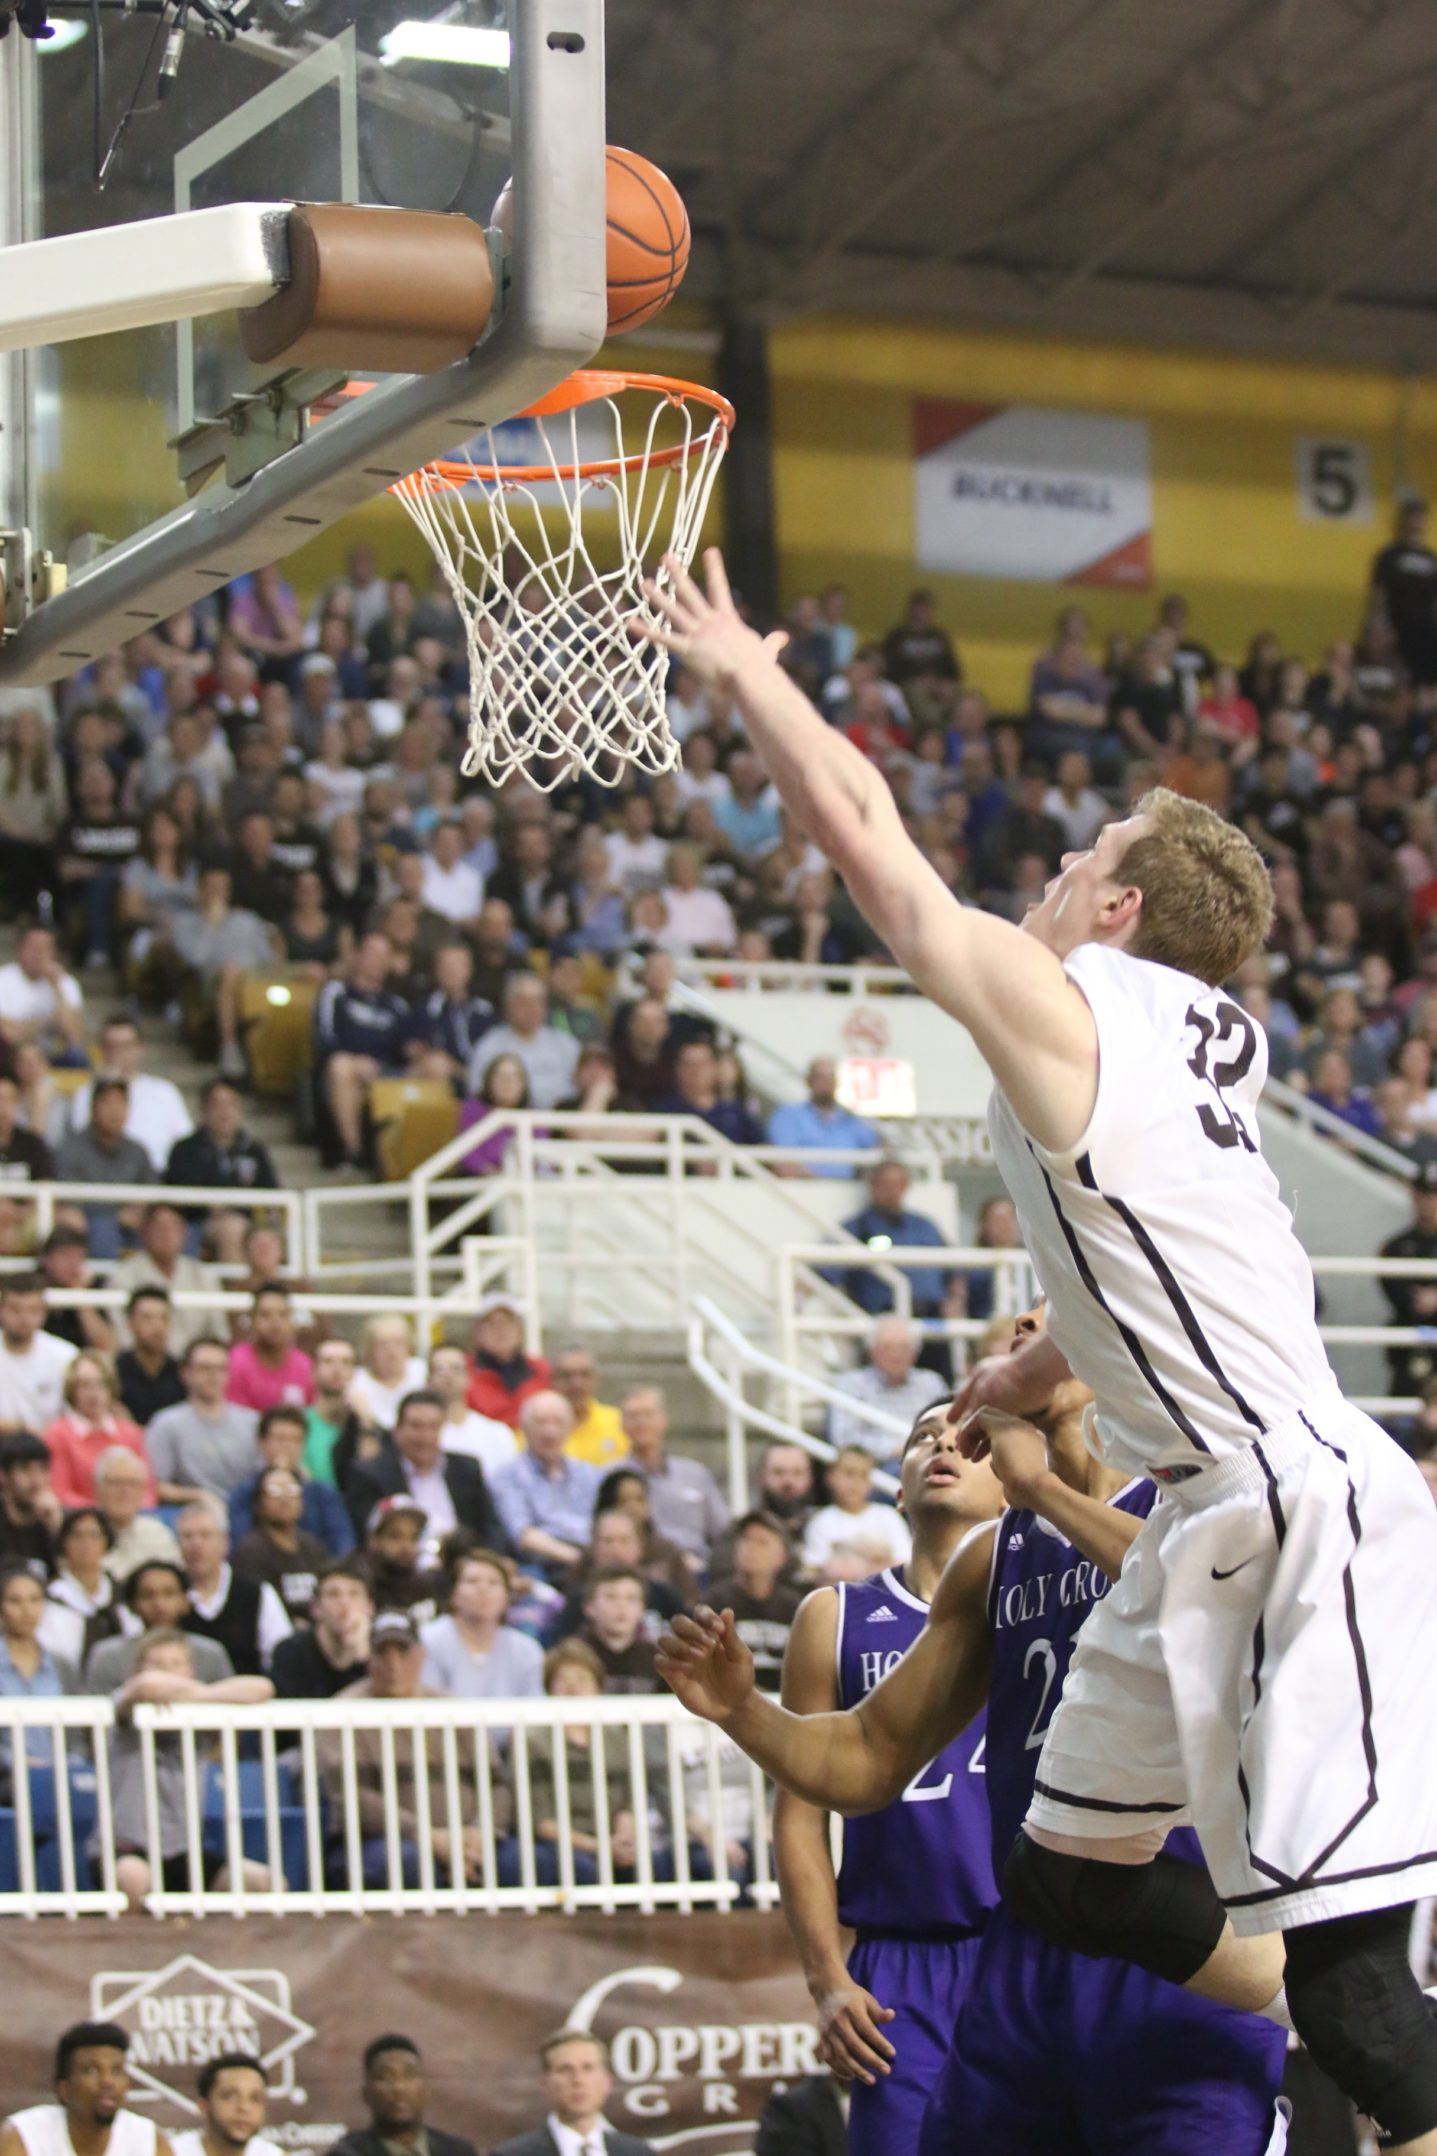 Lehigh junior Tim Kempton reaches high to get the ball to the basket in the Patriot League Championship game Wednesday, March 9, 2016. The Mountain Hawks fell to Holy Cross 56-59. (Gracie Chavers/BW staff)